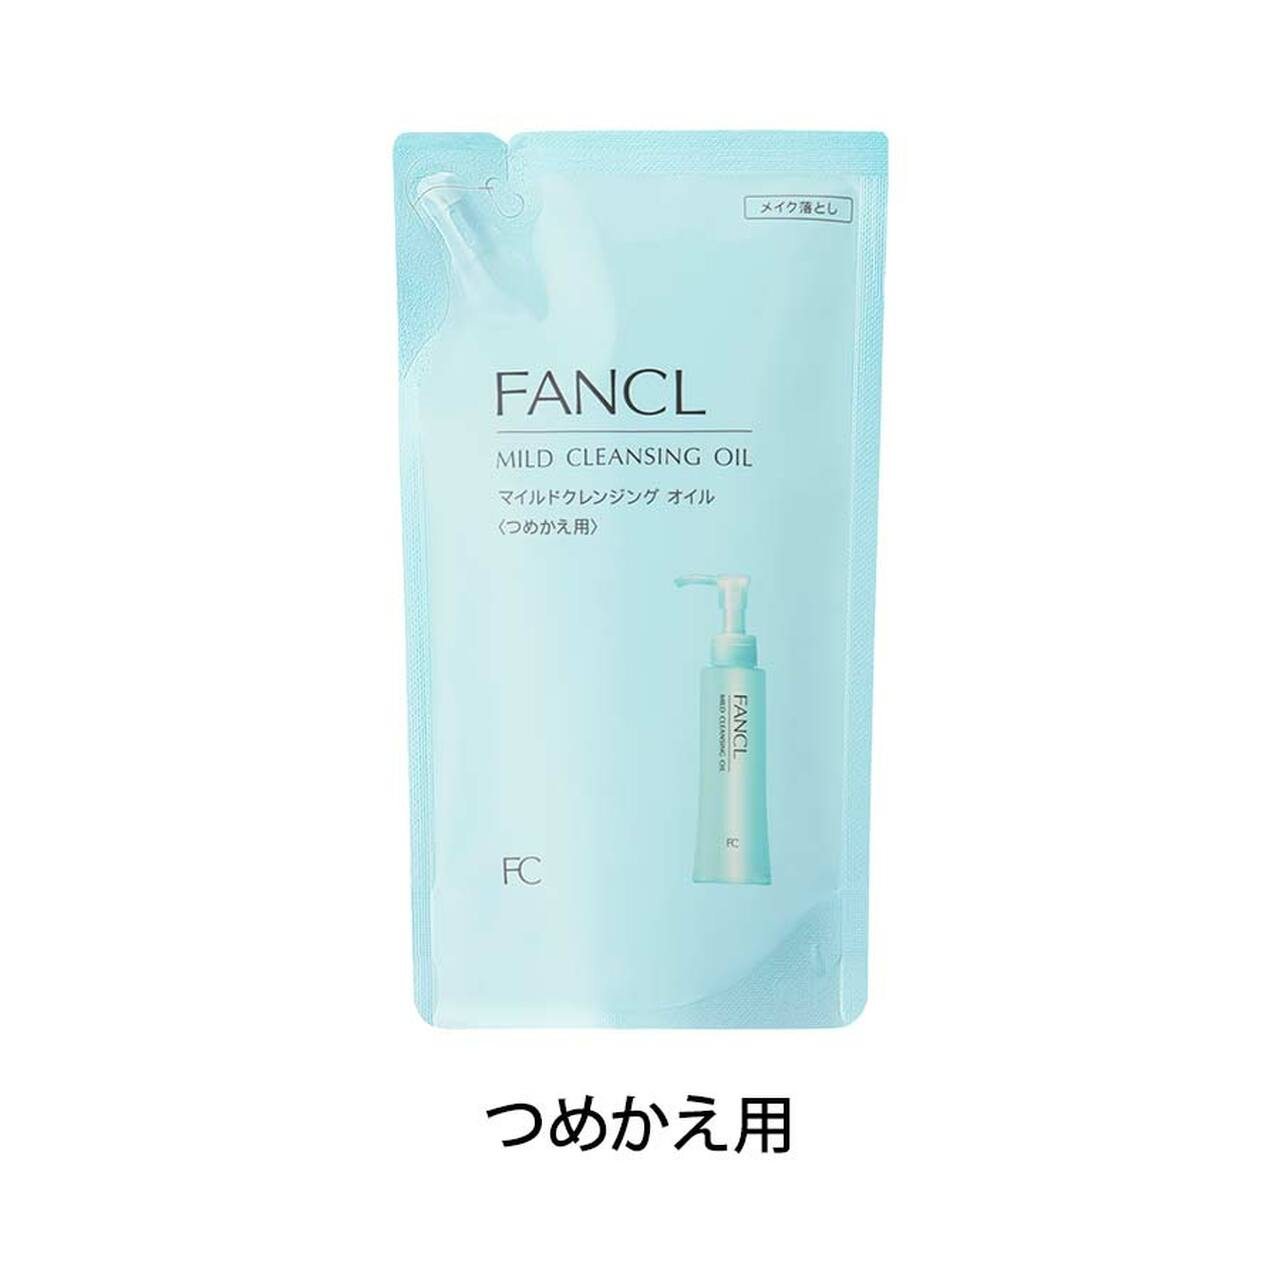 Fancl Mild Cleansing Oil Сменный блок